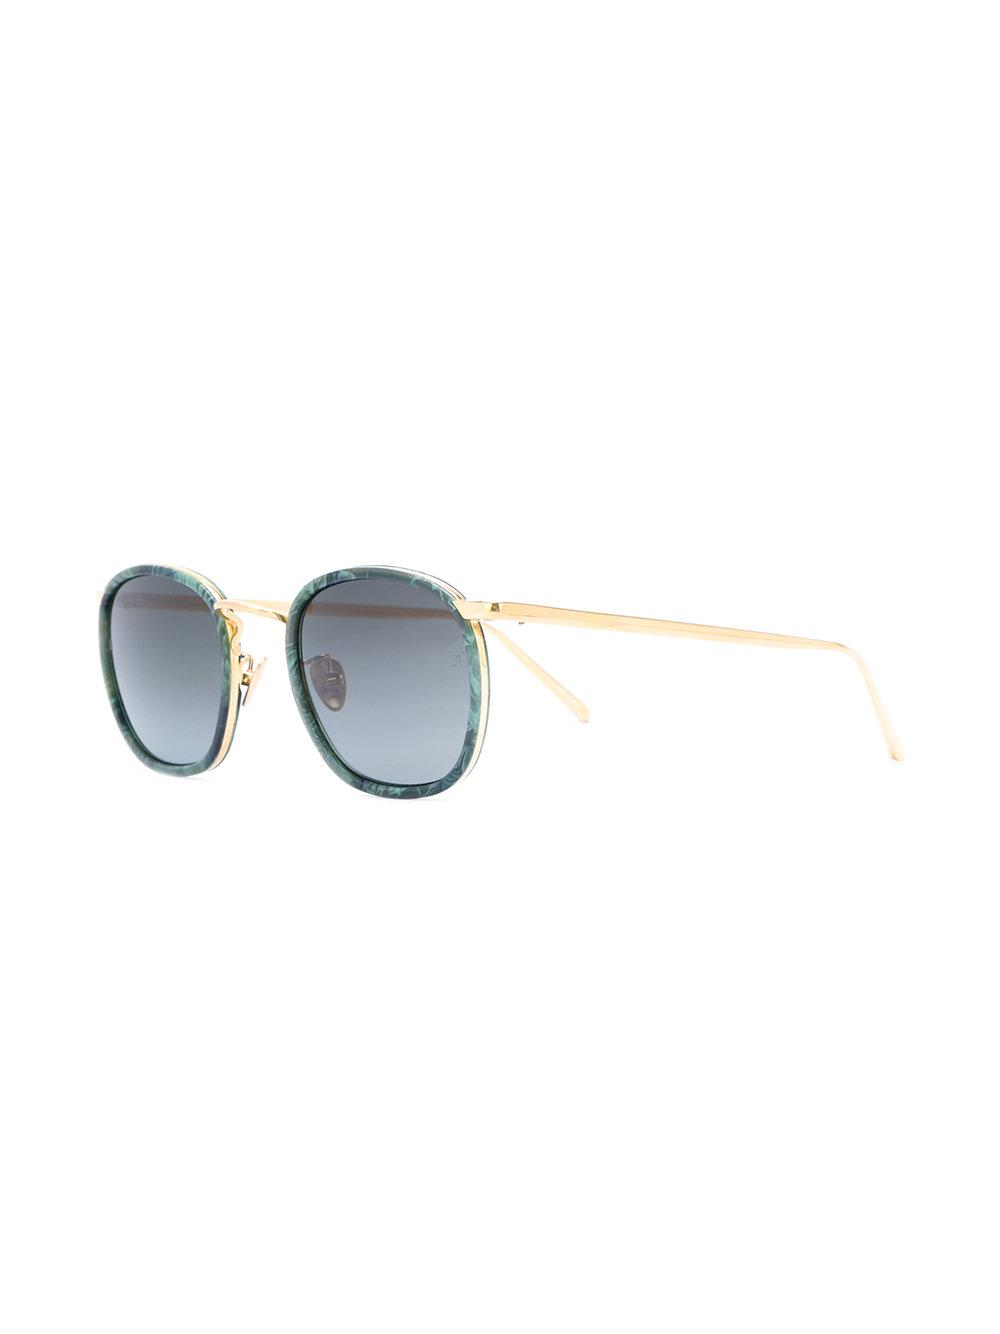 Linda Farrow Floral Frame Sunglasses in Green